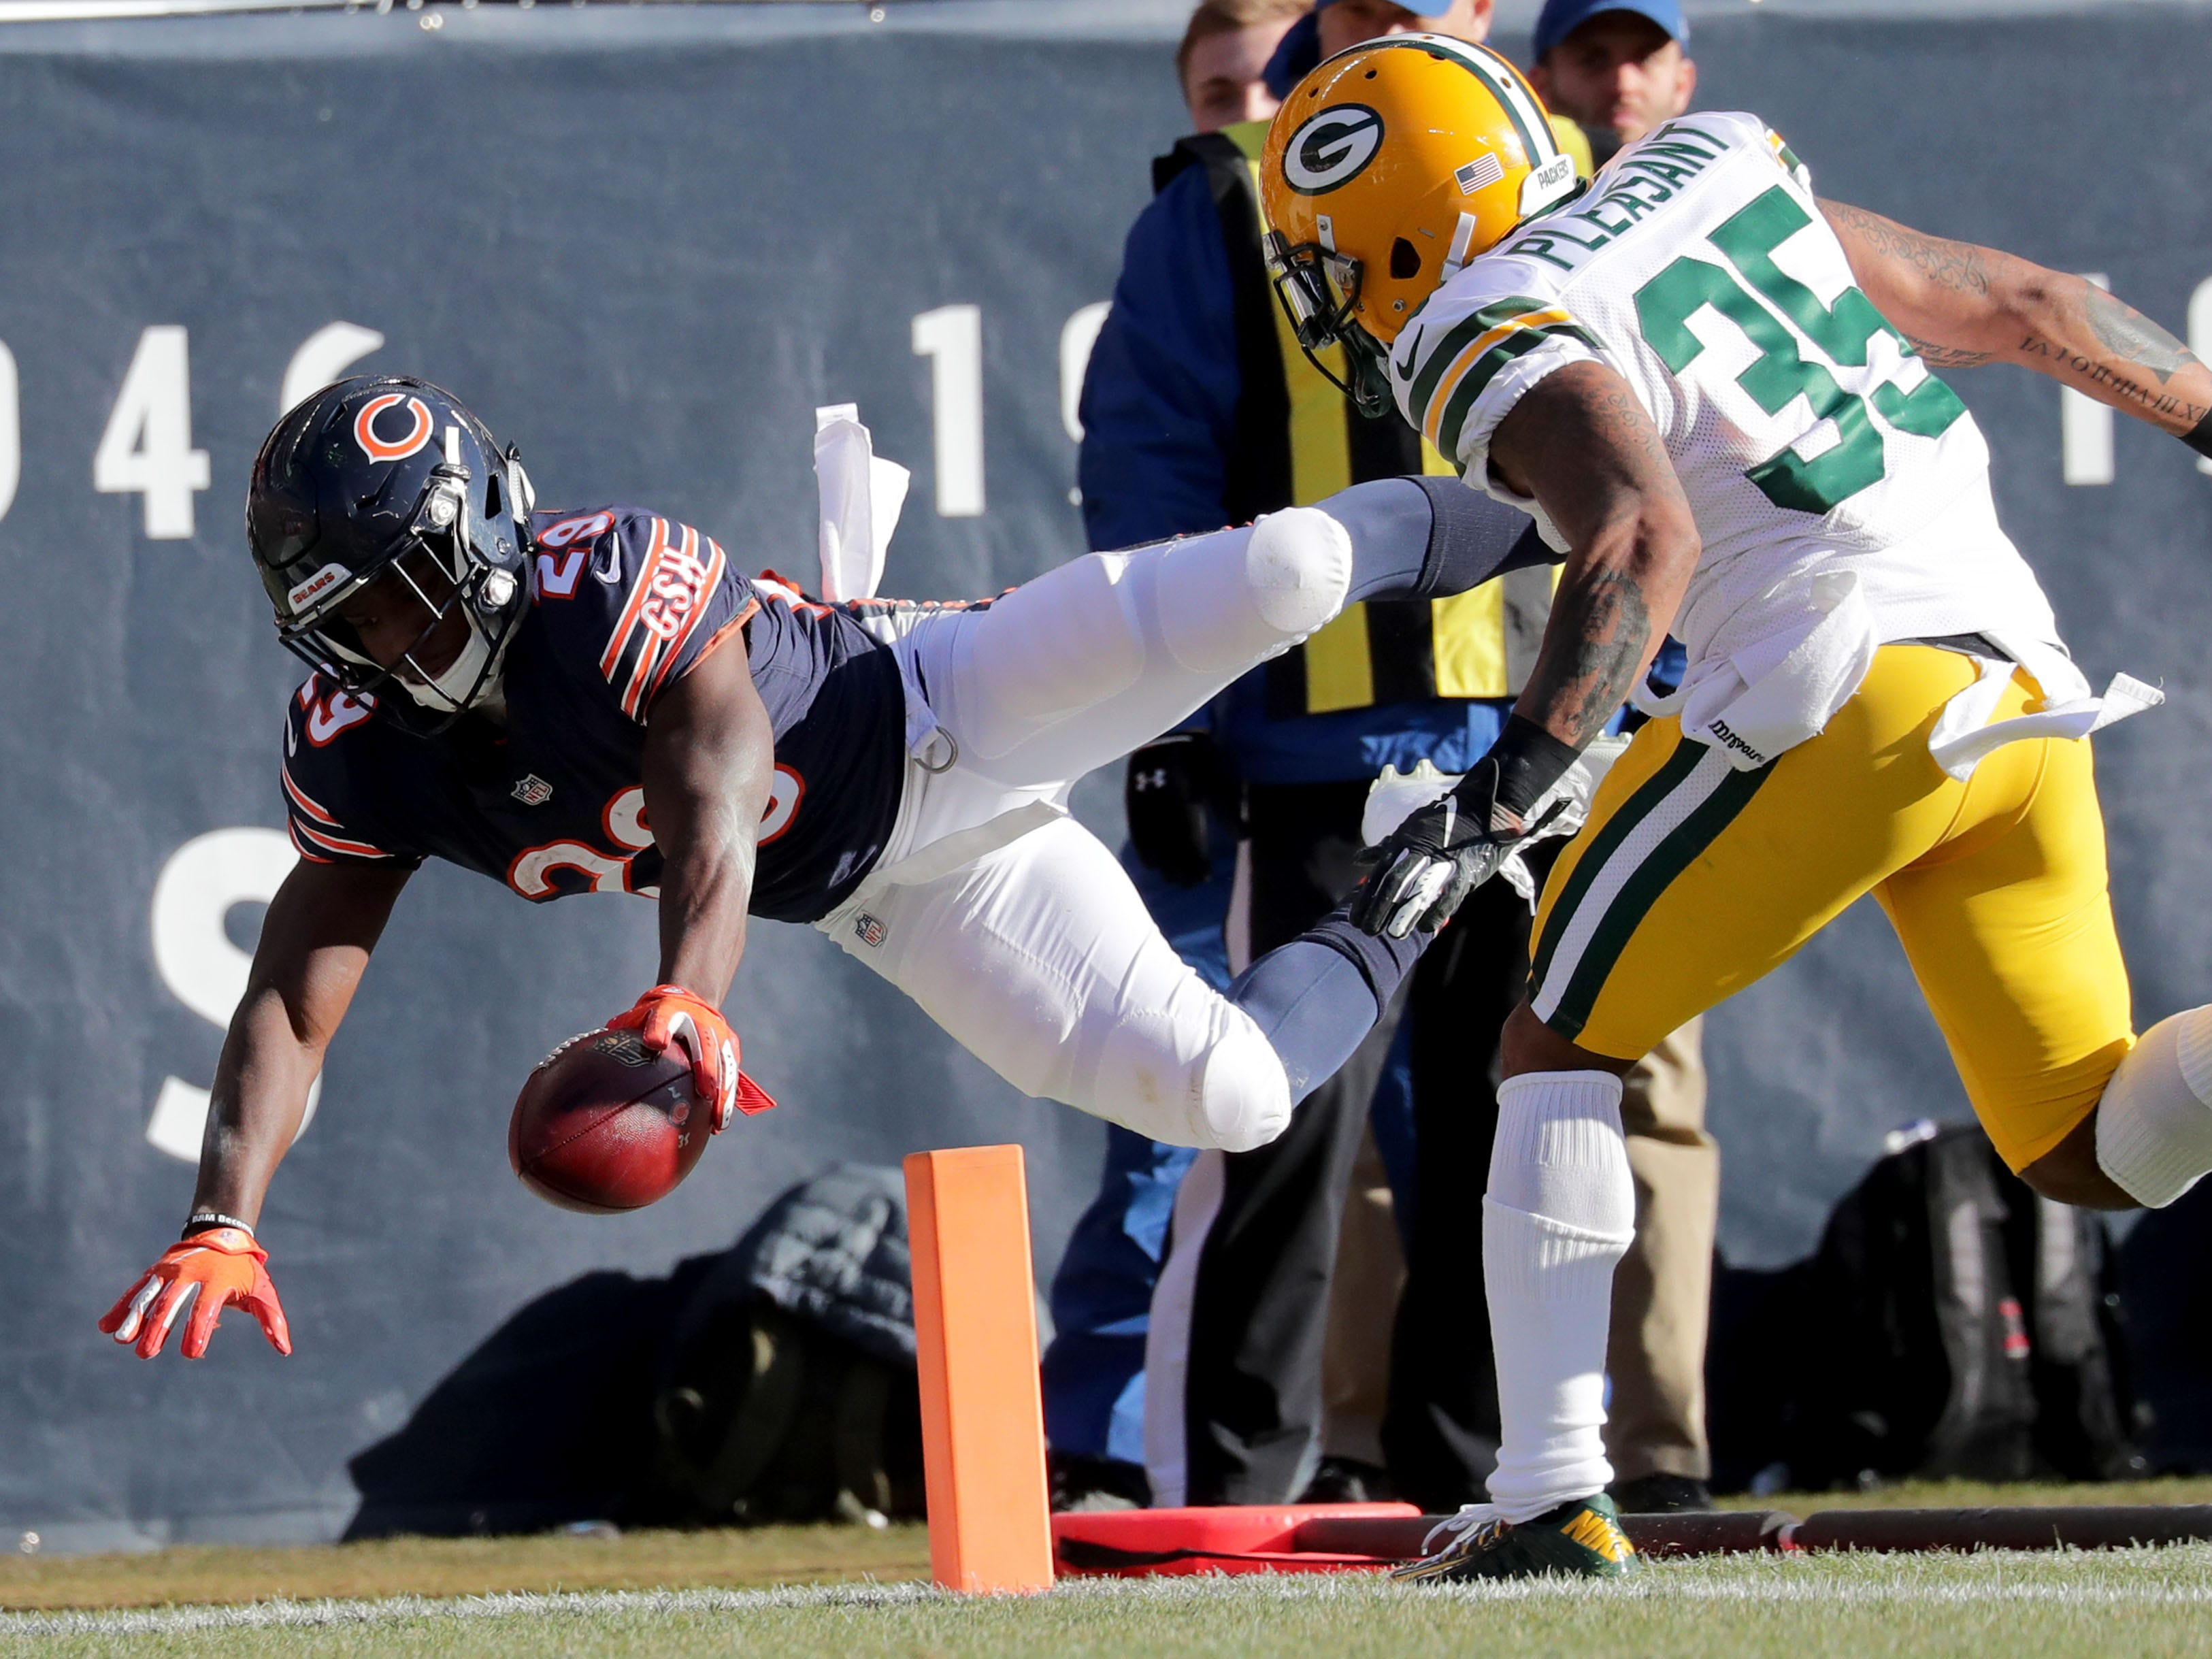 Chicago Bears' Tarik Cohen dives for the touchdown past Green Bay Packers' Eddie Pleasant during the 1st half of the Green Bay Packers game against the Chicago Bears at Soldier Field Sunday, Dec. 16, 2018, in Chicago. Photo by Mike De Sisti / The Milwaukee Journal Sentinel